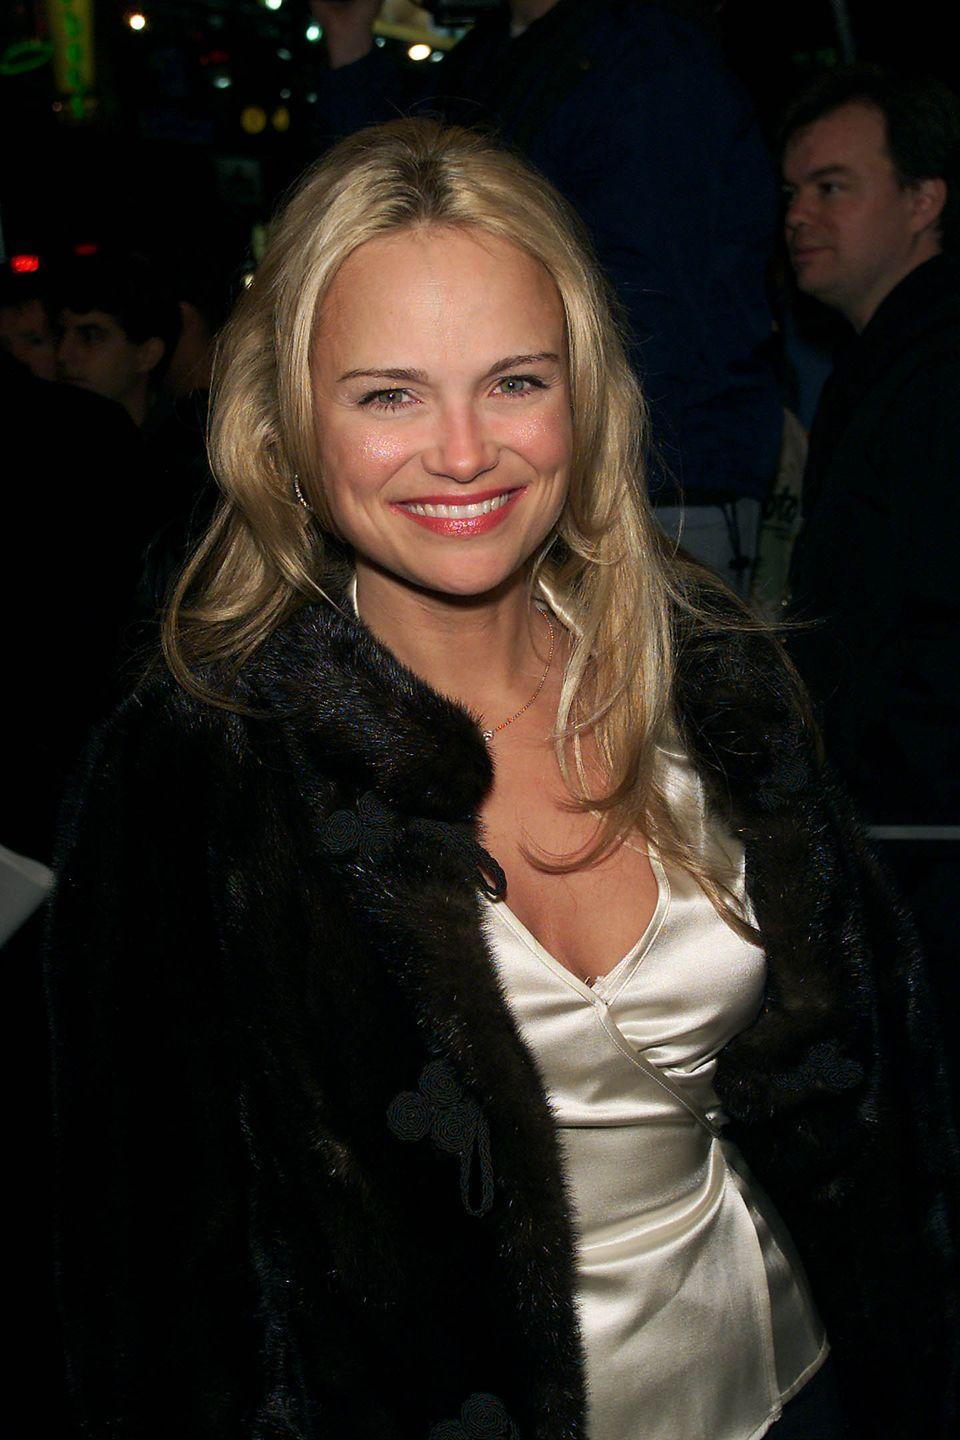 <p>Chenoweth is one of the best-known crossover Broadway stars, demonstrating a long, successful career on stage and screen. She made her Broadway debut in 1997's <em>Steel Pier. </em>She won a Tony Award for playing Sally in <em>You're a Good Man, Charlie Brown. </em>But her most notable performance was originating the role of Glinda in <em>Wicked. </em>Chenoweth also won an Emmy for the ABC show <em>Pushing Daisies</em><em>. </em></p>